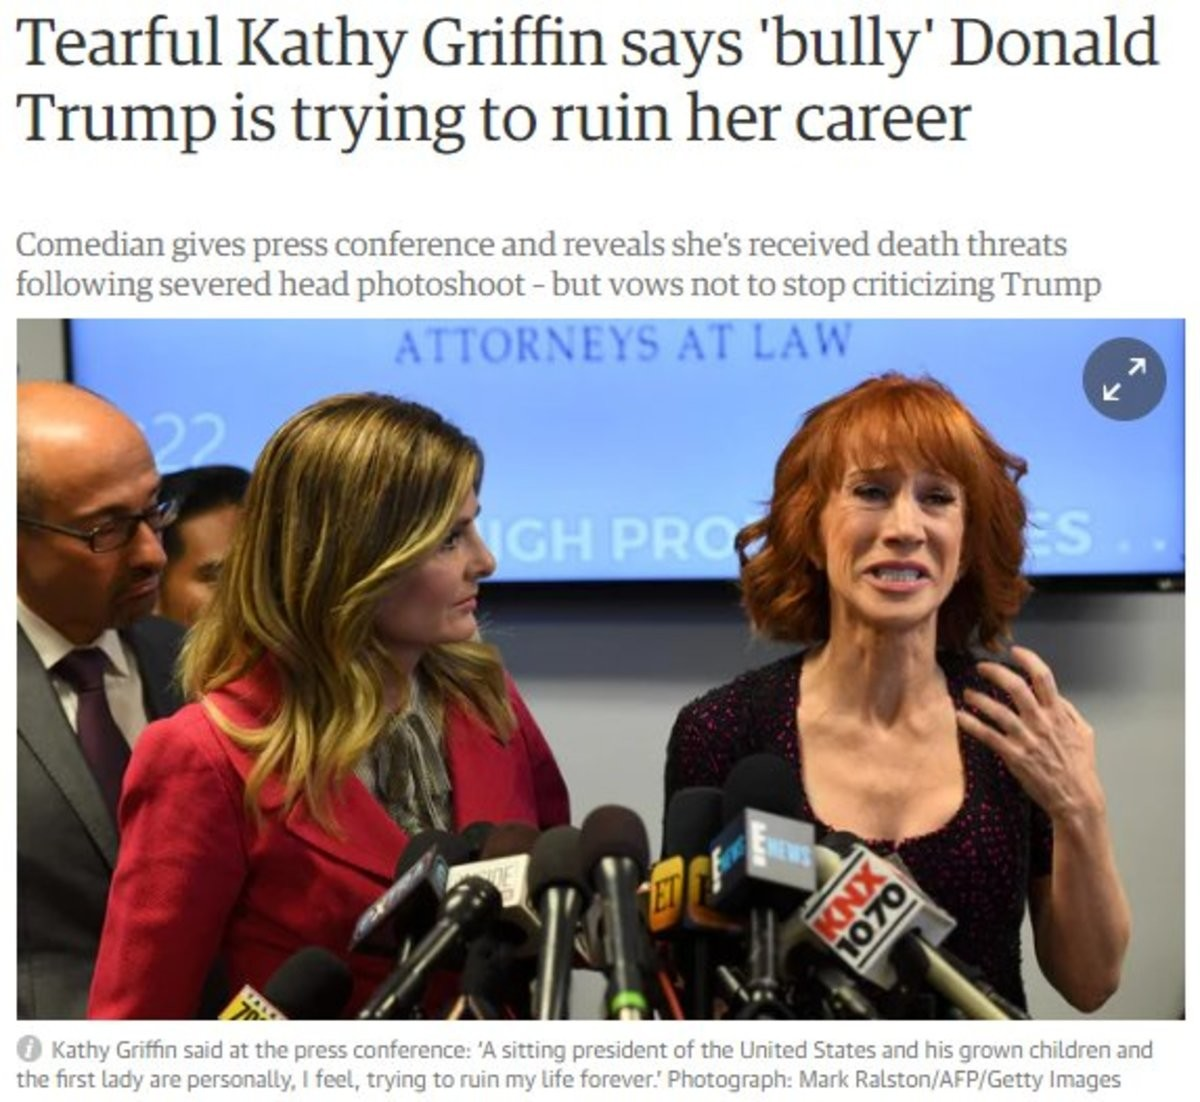 headline sounds little. .. >Bullying Donald is OK >Gets bullied back. Not OK